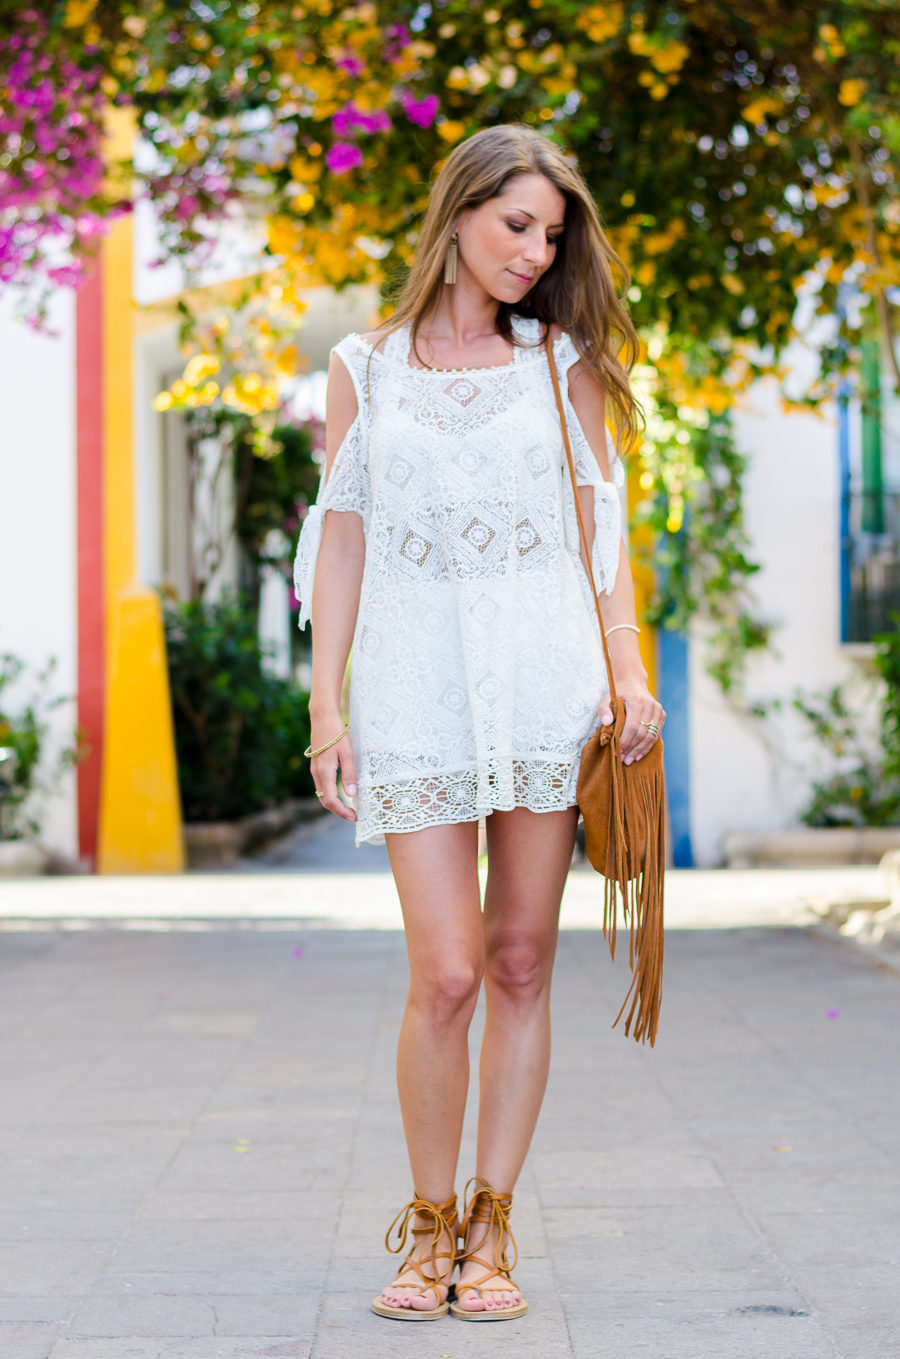 boho lace dress gladiator sandals and fringe bag romantic summer outfit